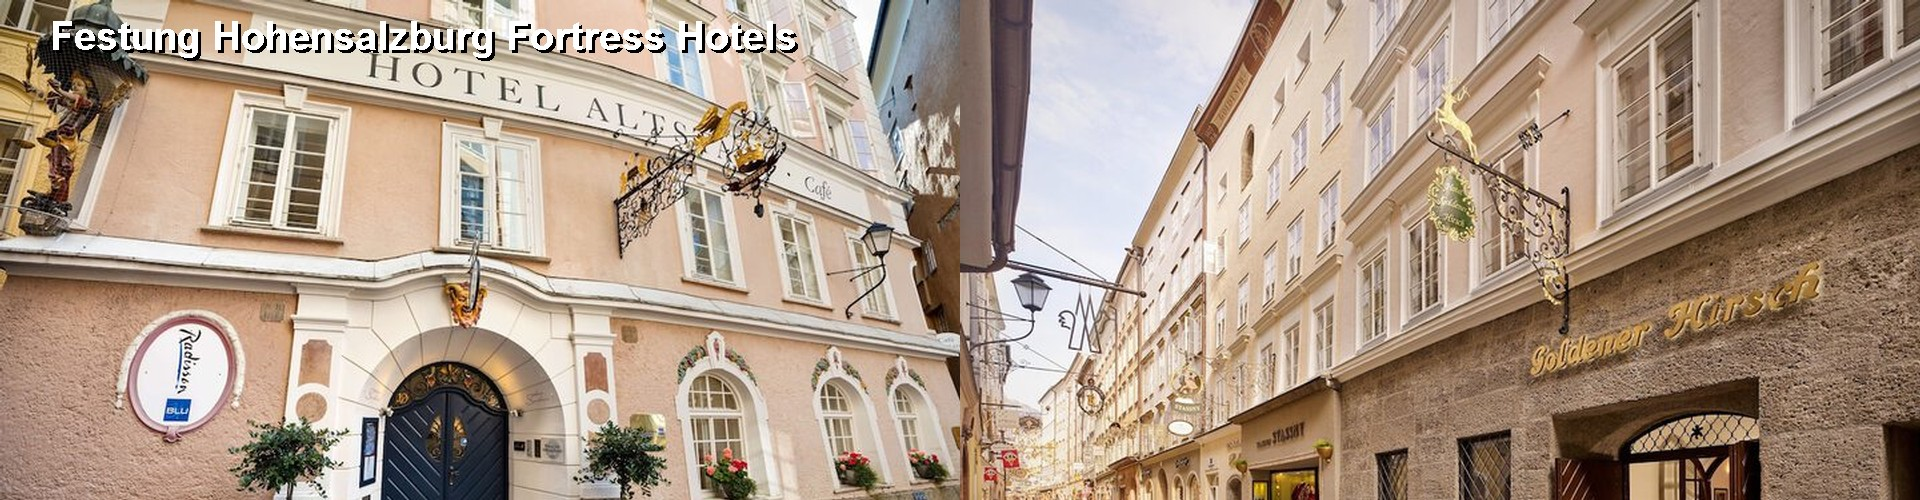 5 Best Hotels near Festung Hohensalzburg Fortress